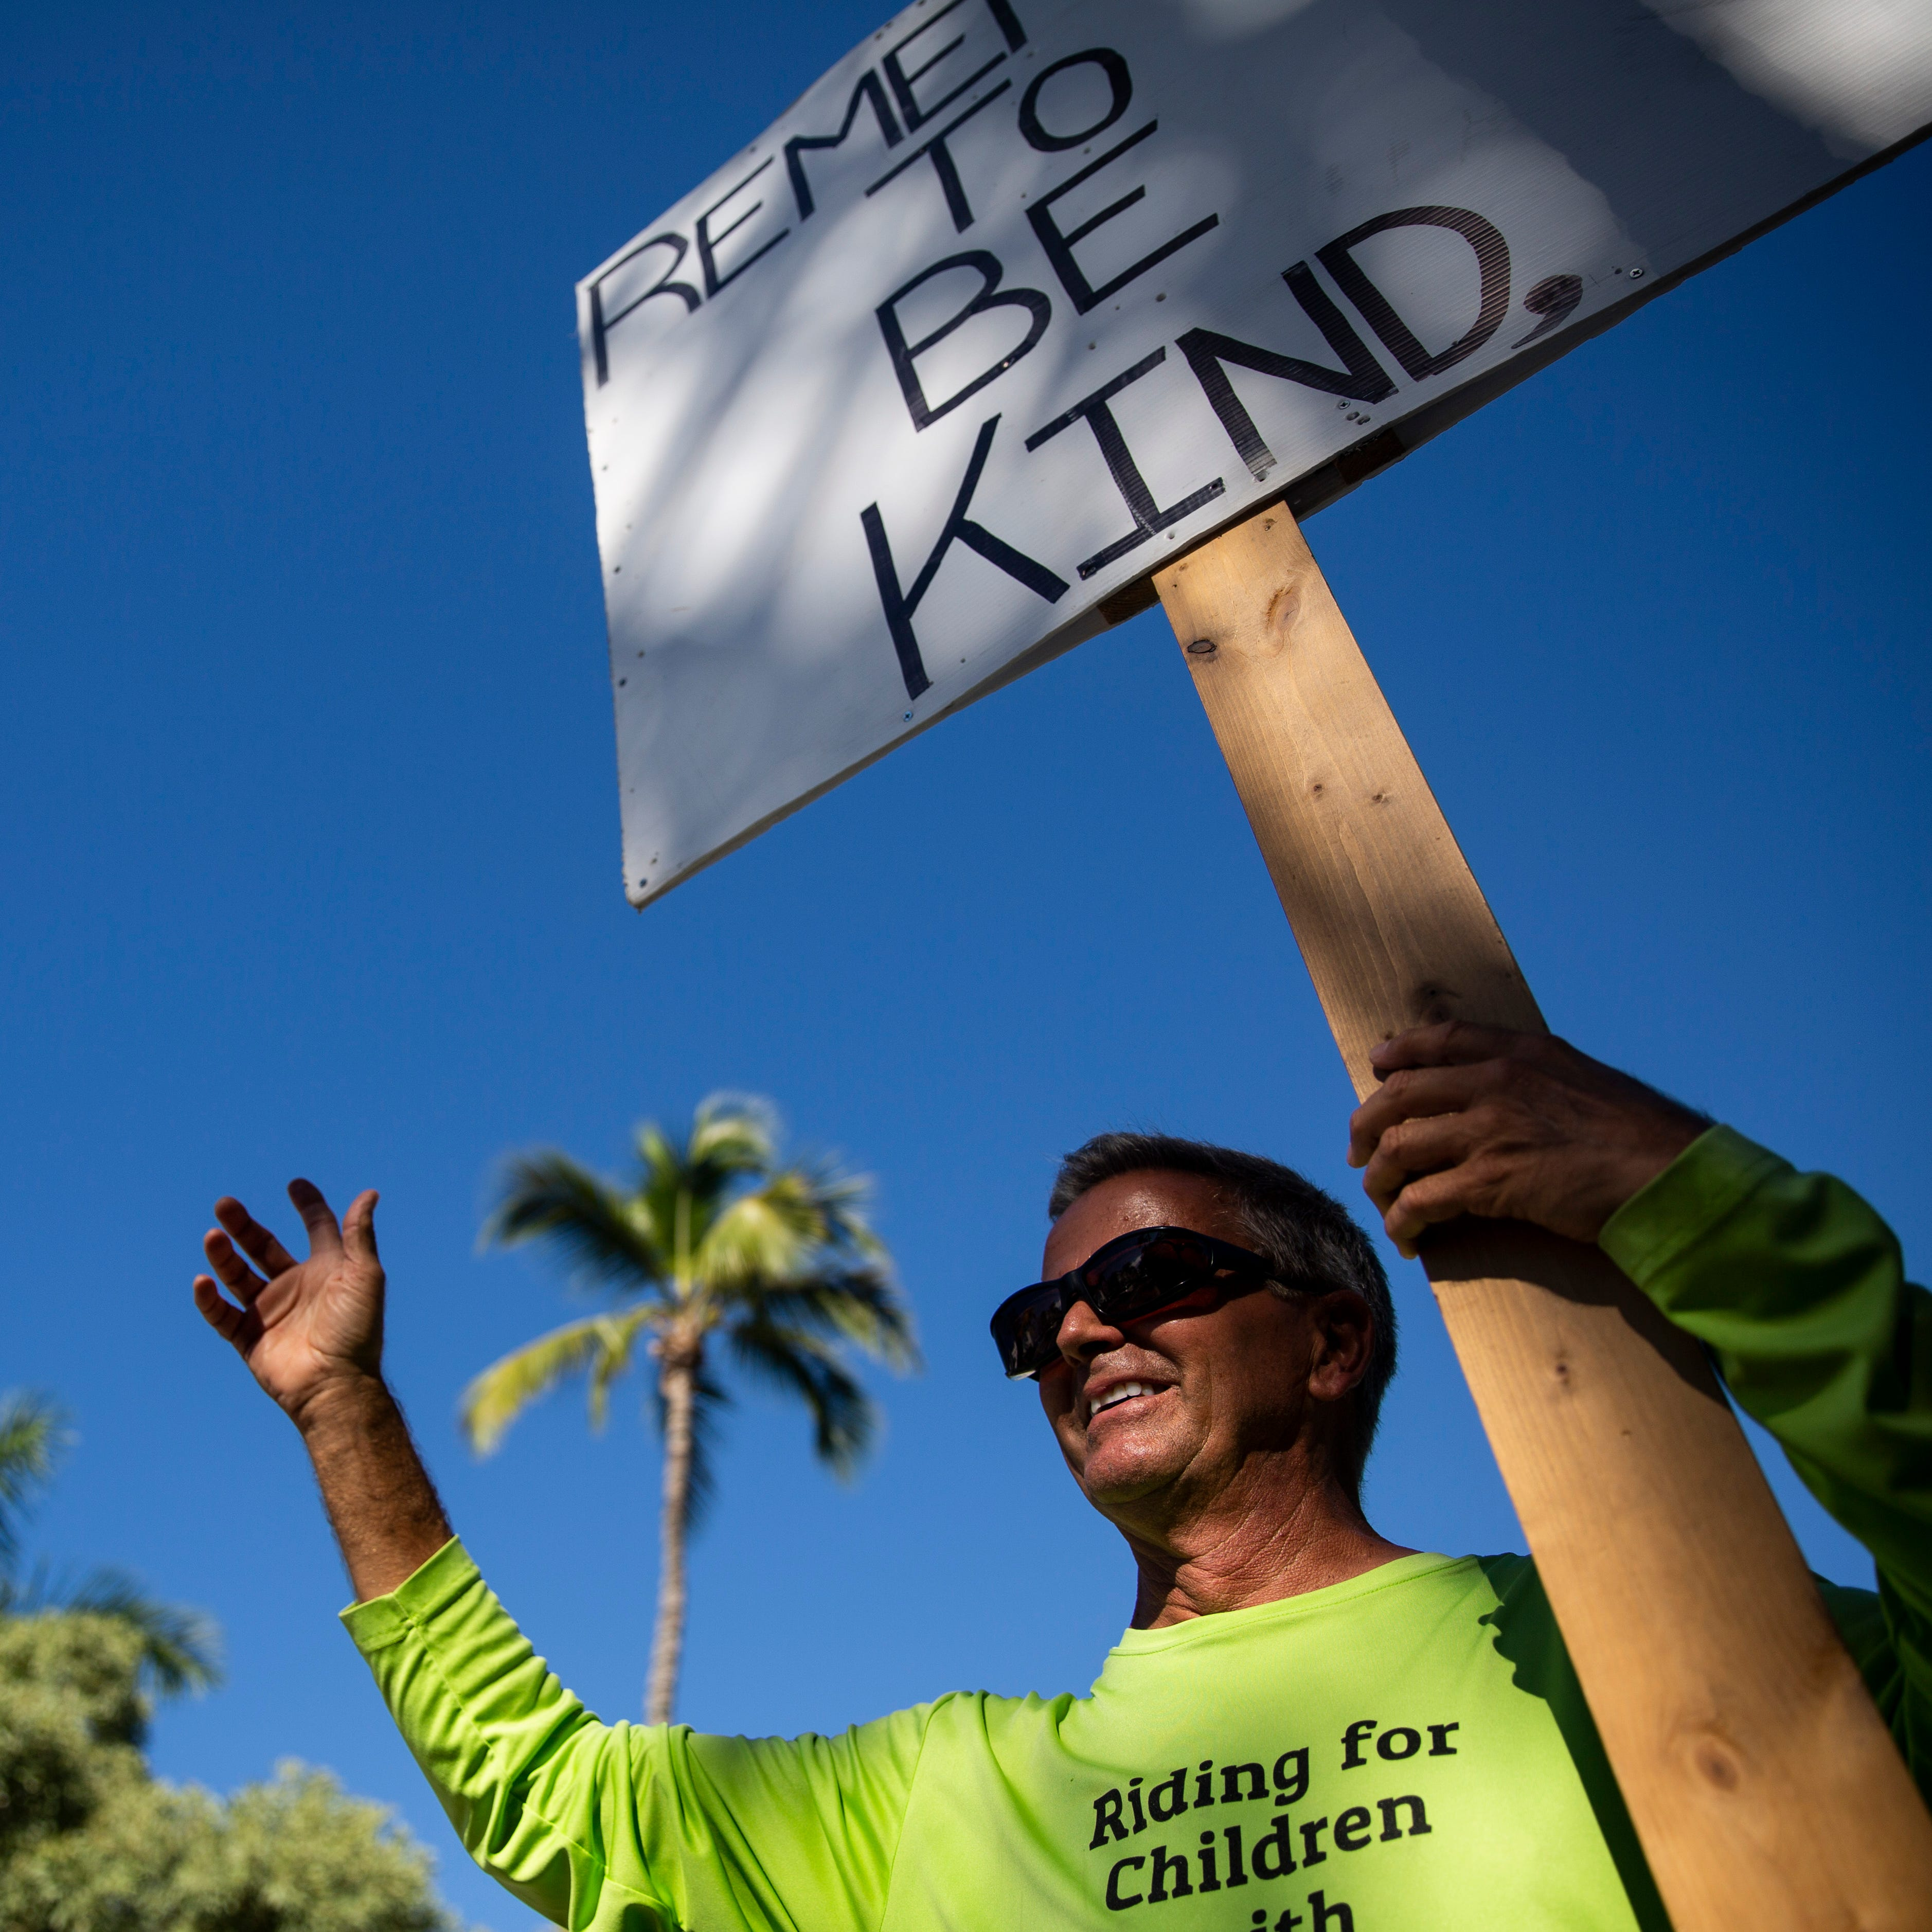 Inspired to take action after mass shooting, Naples retiree travels with message: 'Be kind'